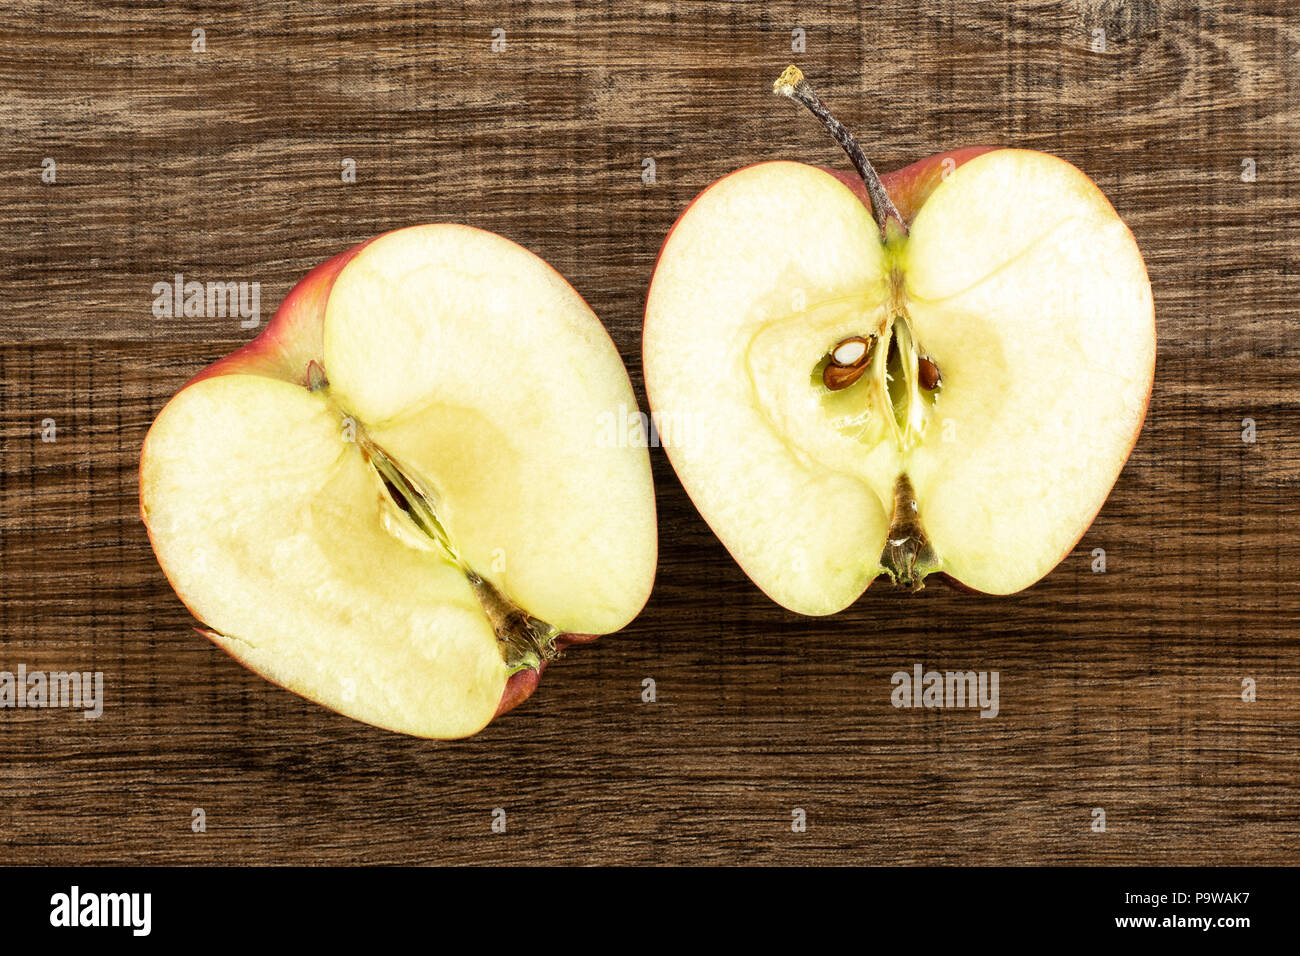 Red delicious apple two section halves flatlay on brown wood background - Stock Image